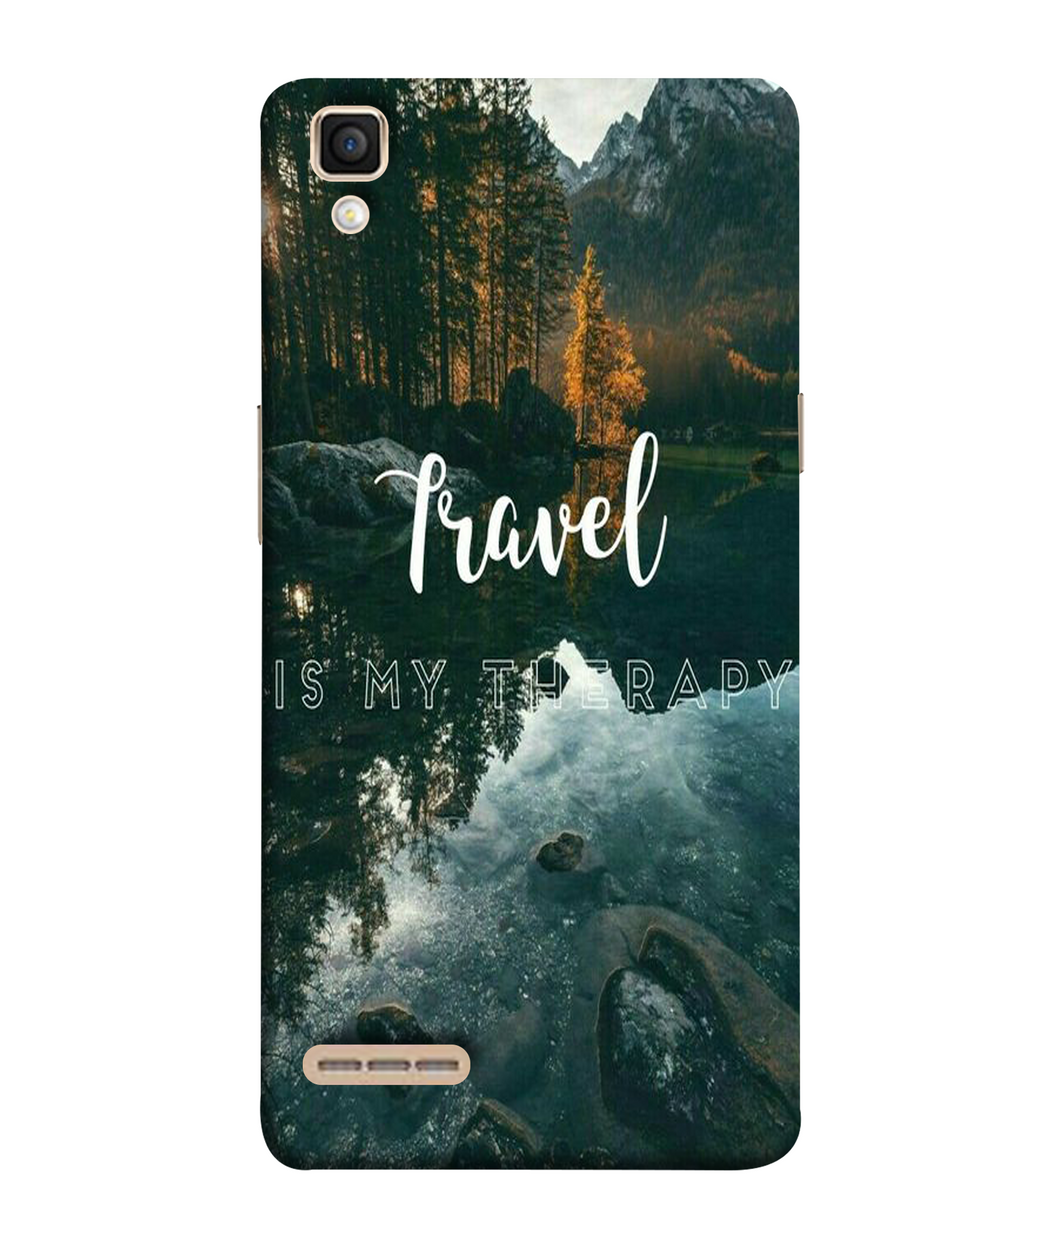 Oppo F1 Travel mobile cover